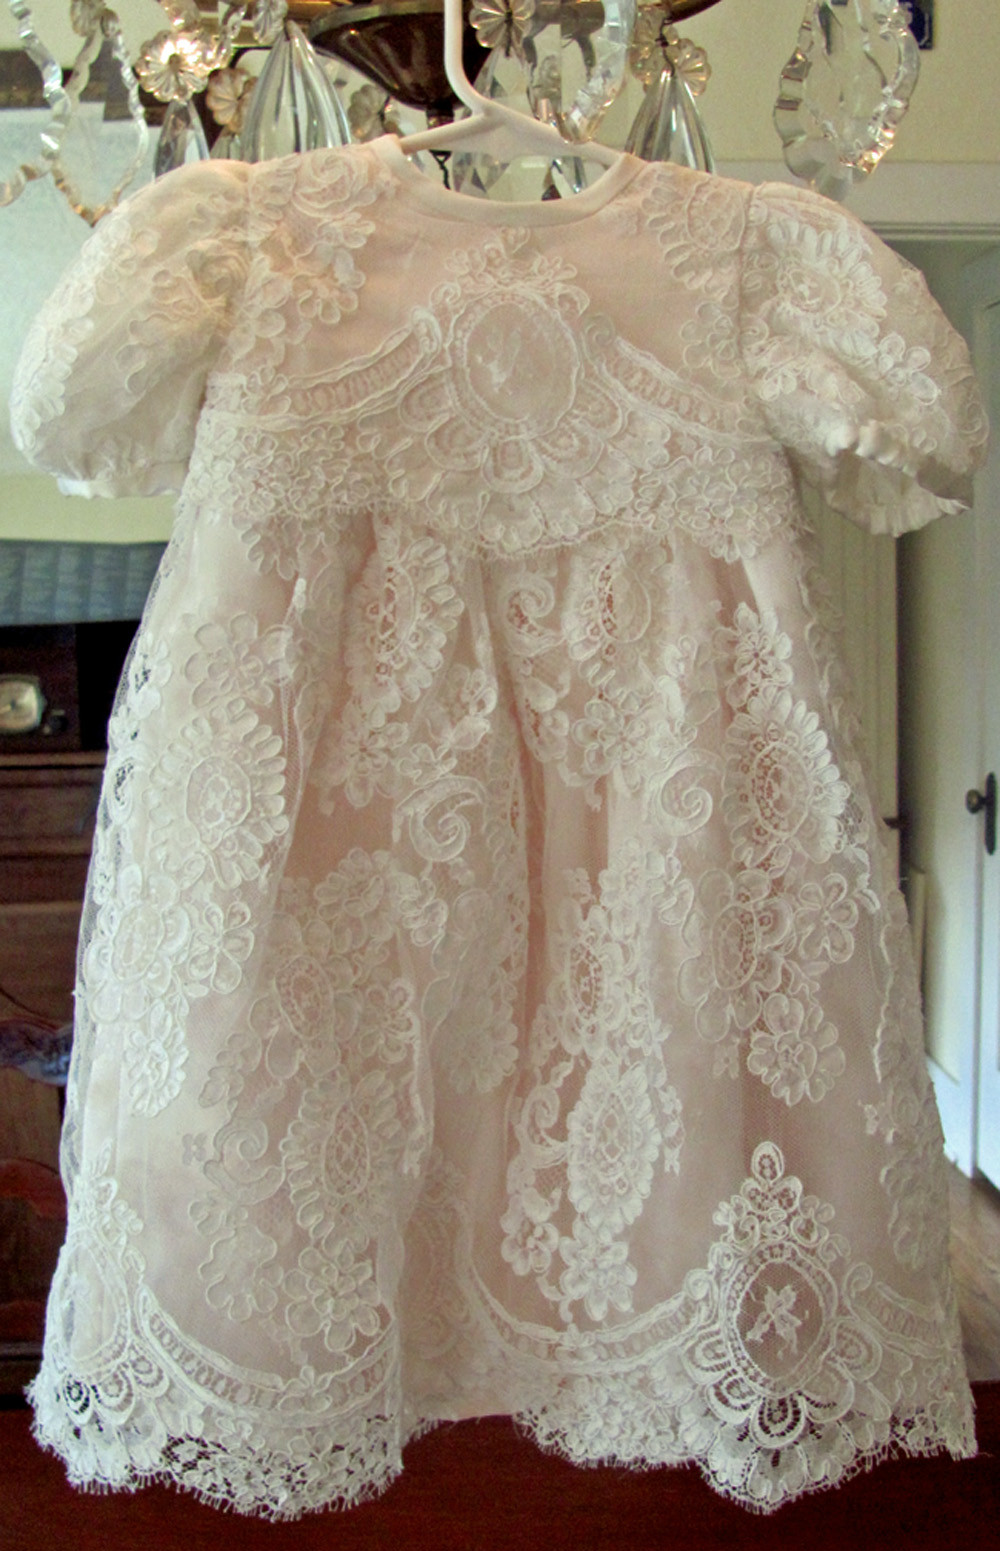 Lace Christening Dress Luxury Baby Lace Christening Gown – Sewing Projects Of Innovative 42 Images Lace Christening Dress